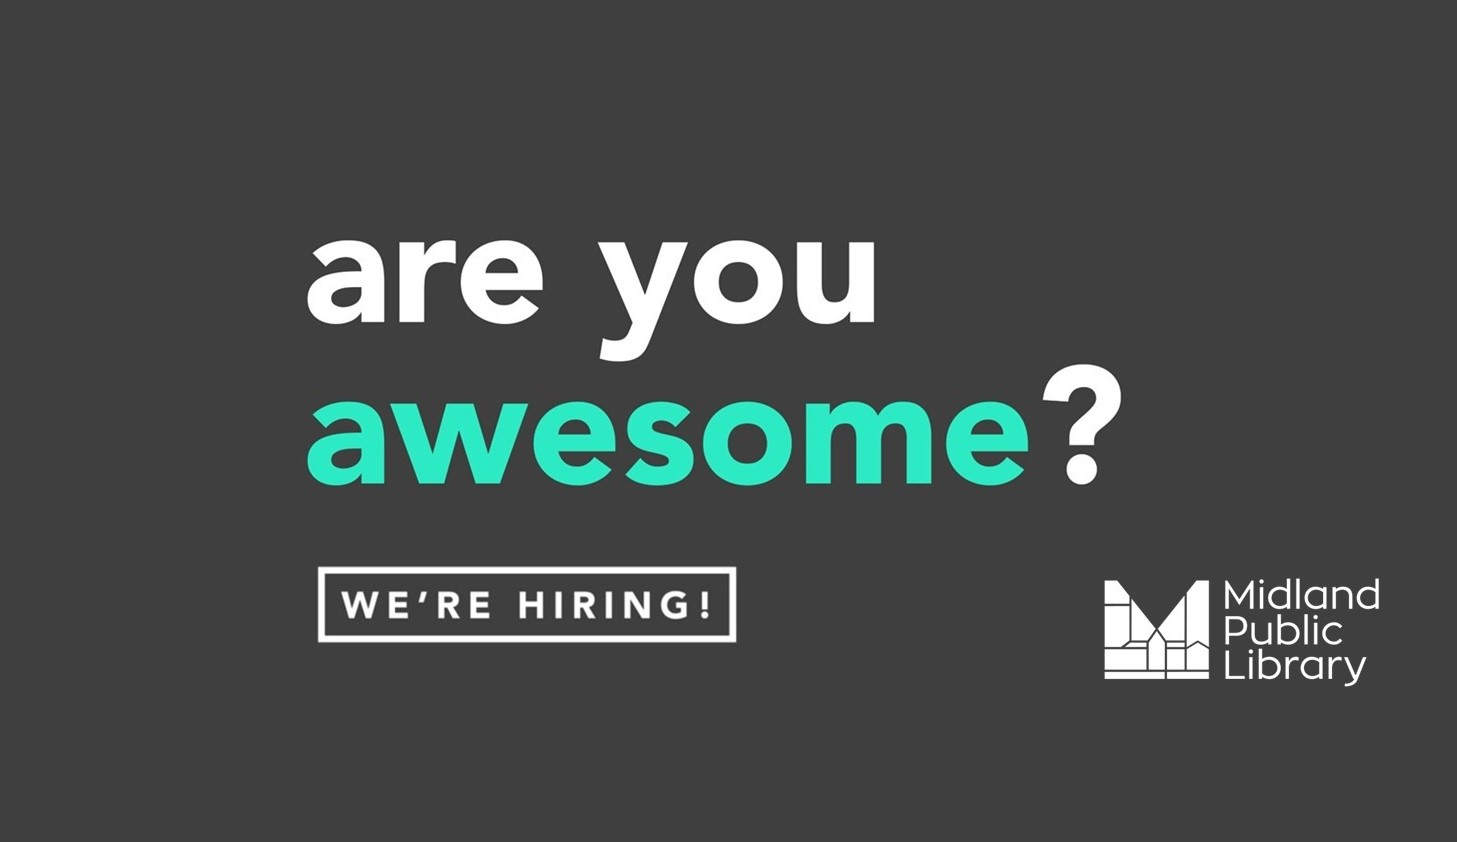 we're hiring! click for link